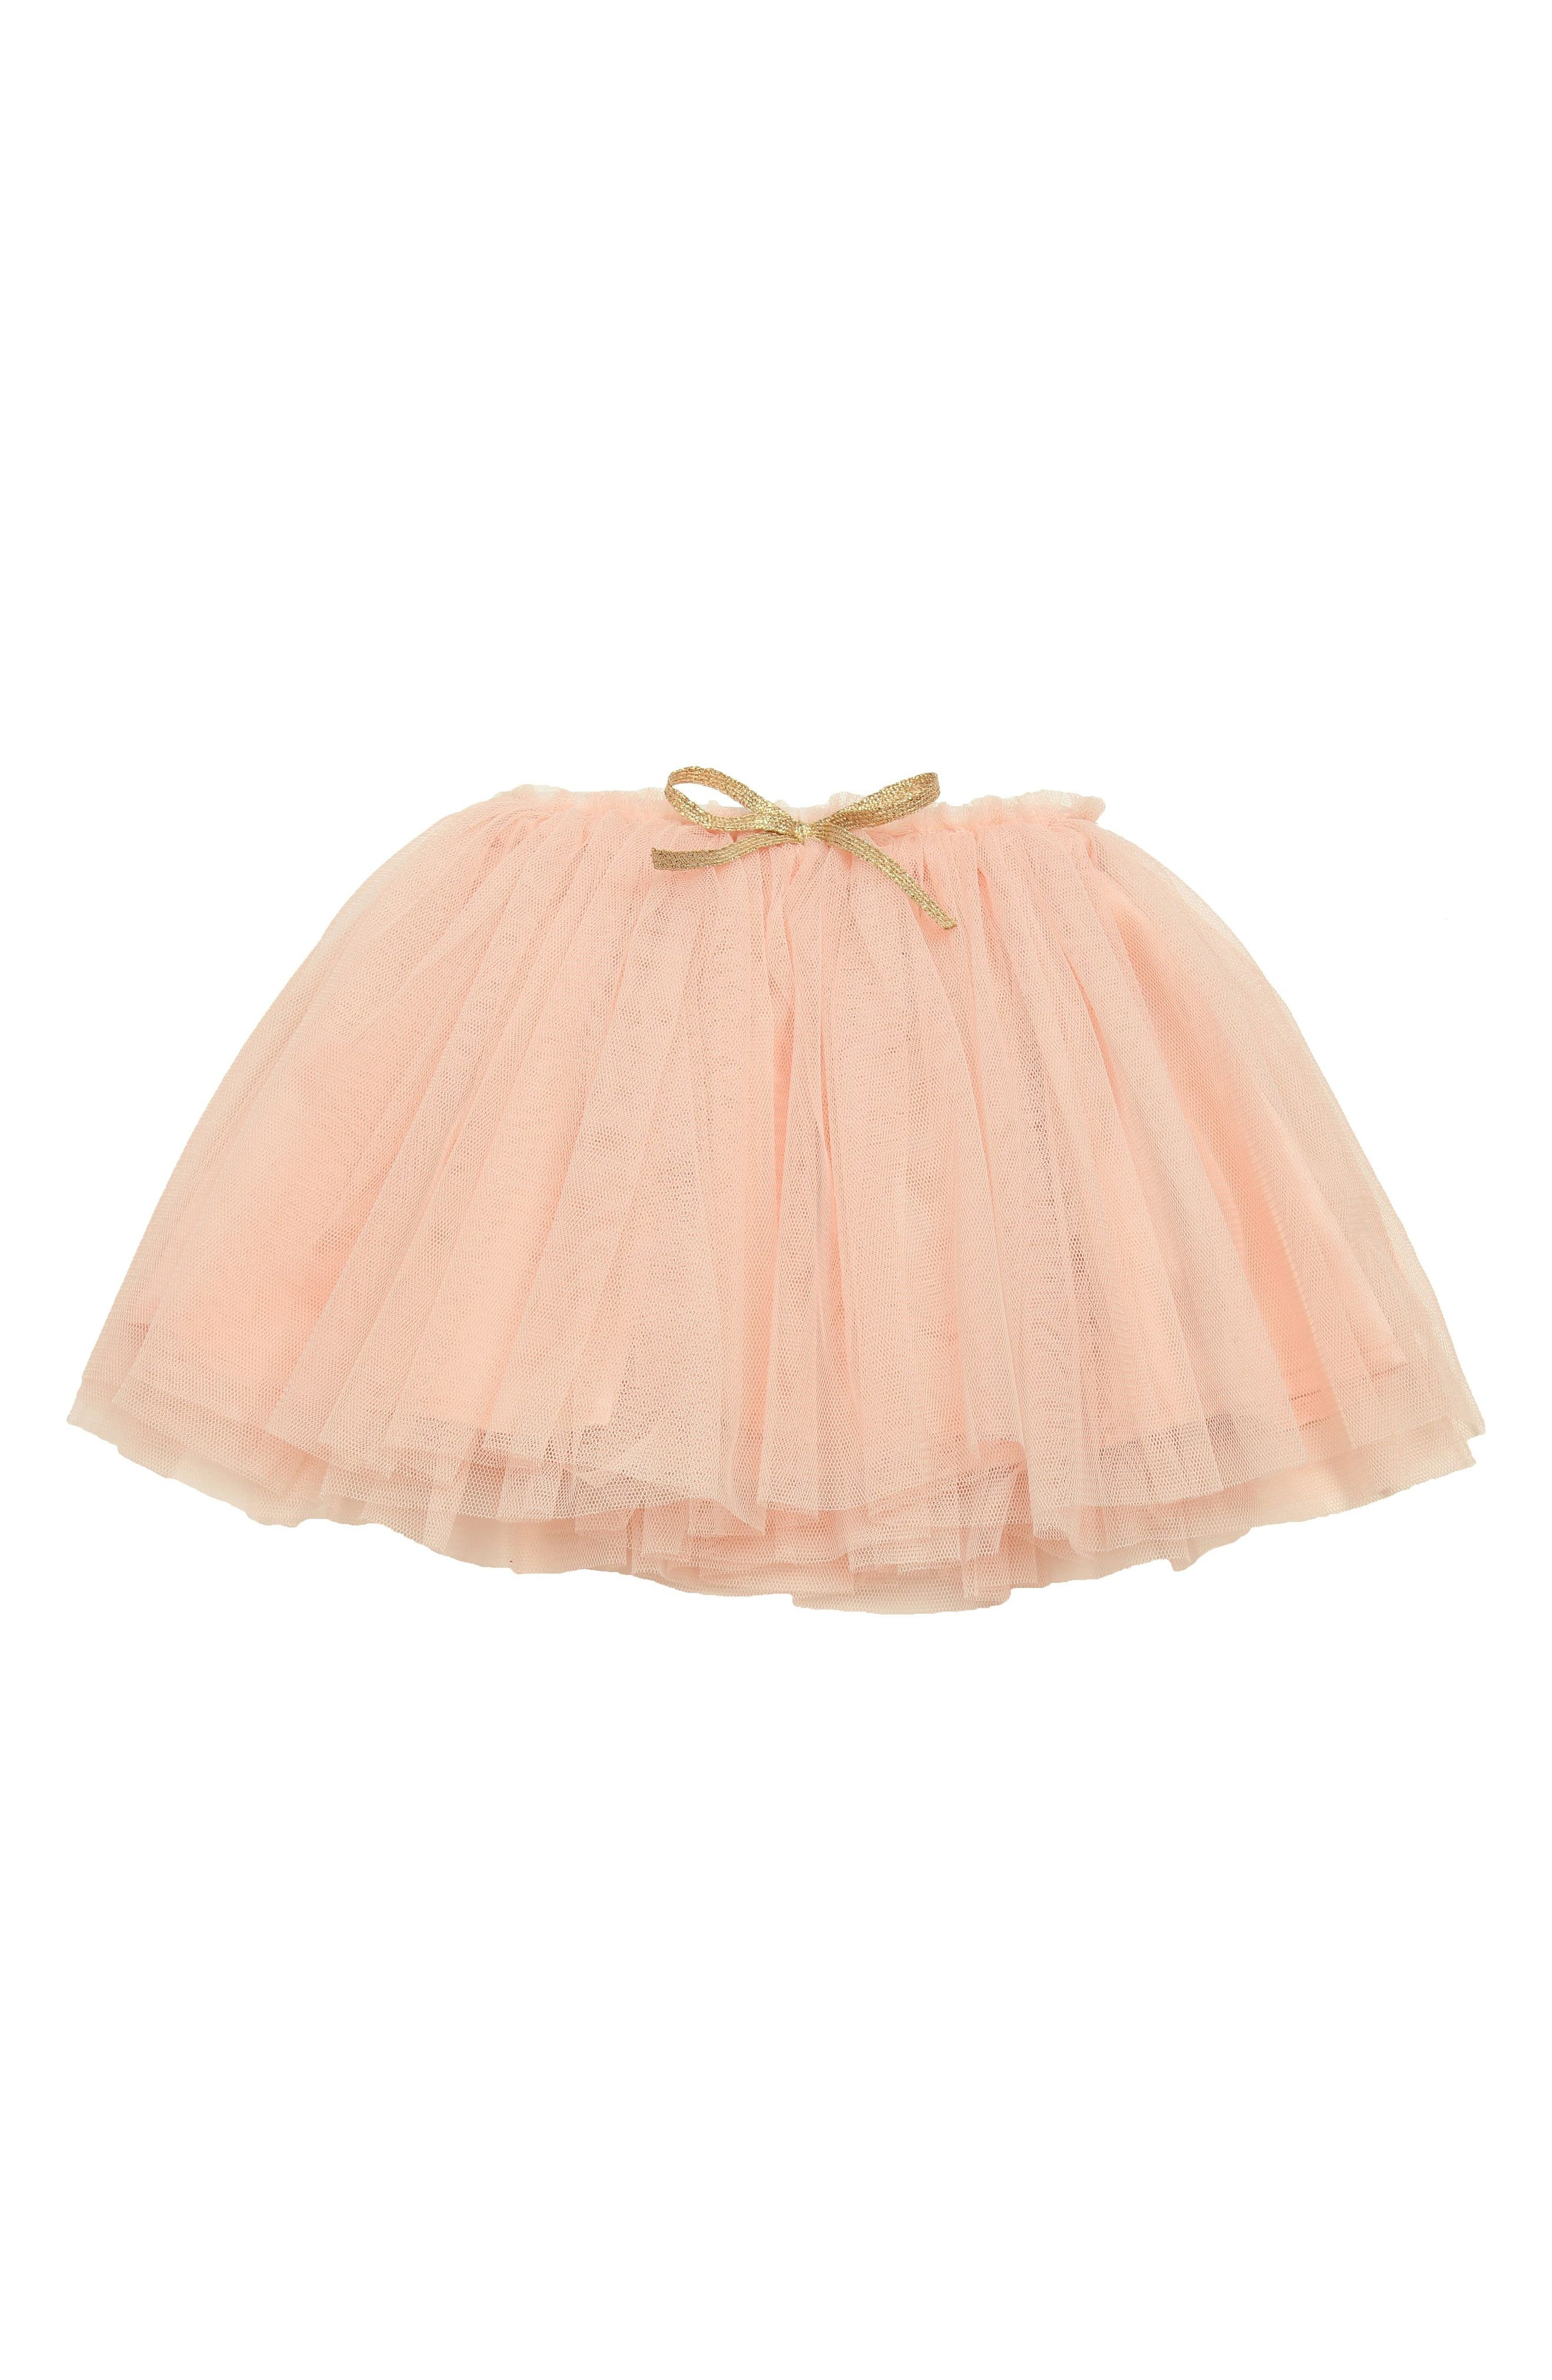 Tutu Skirt,                             Alternate thumbnail 3, color,                             ROSE